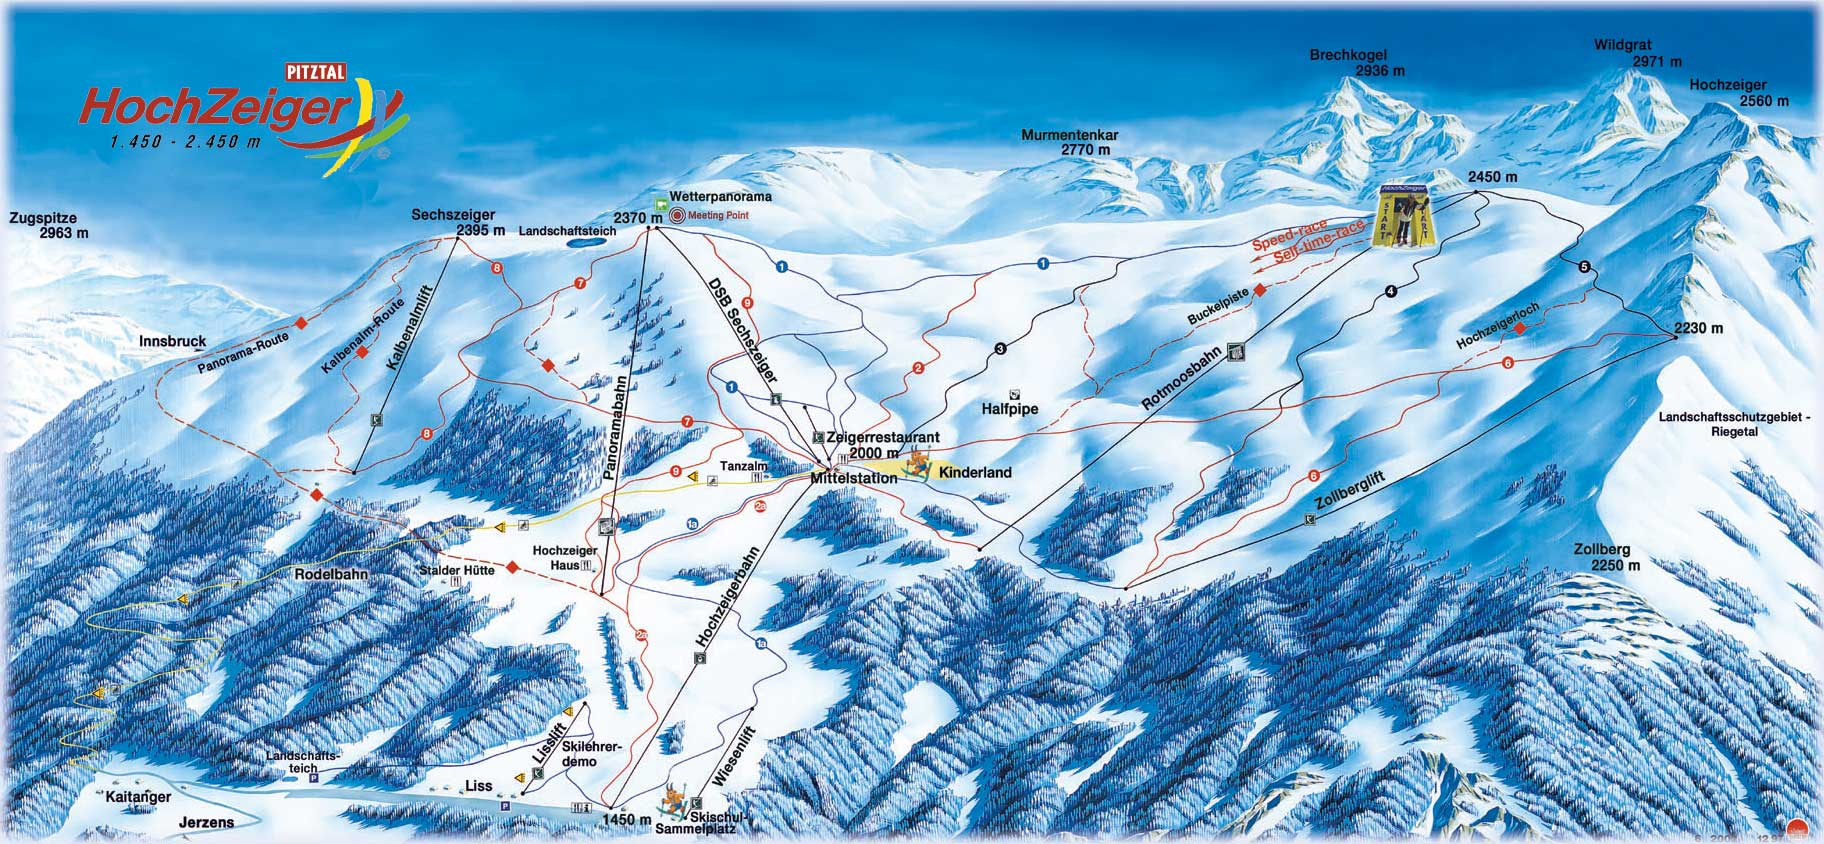 pitztal - map